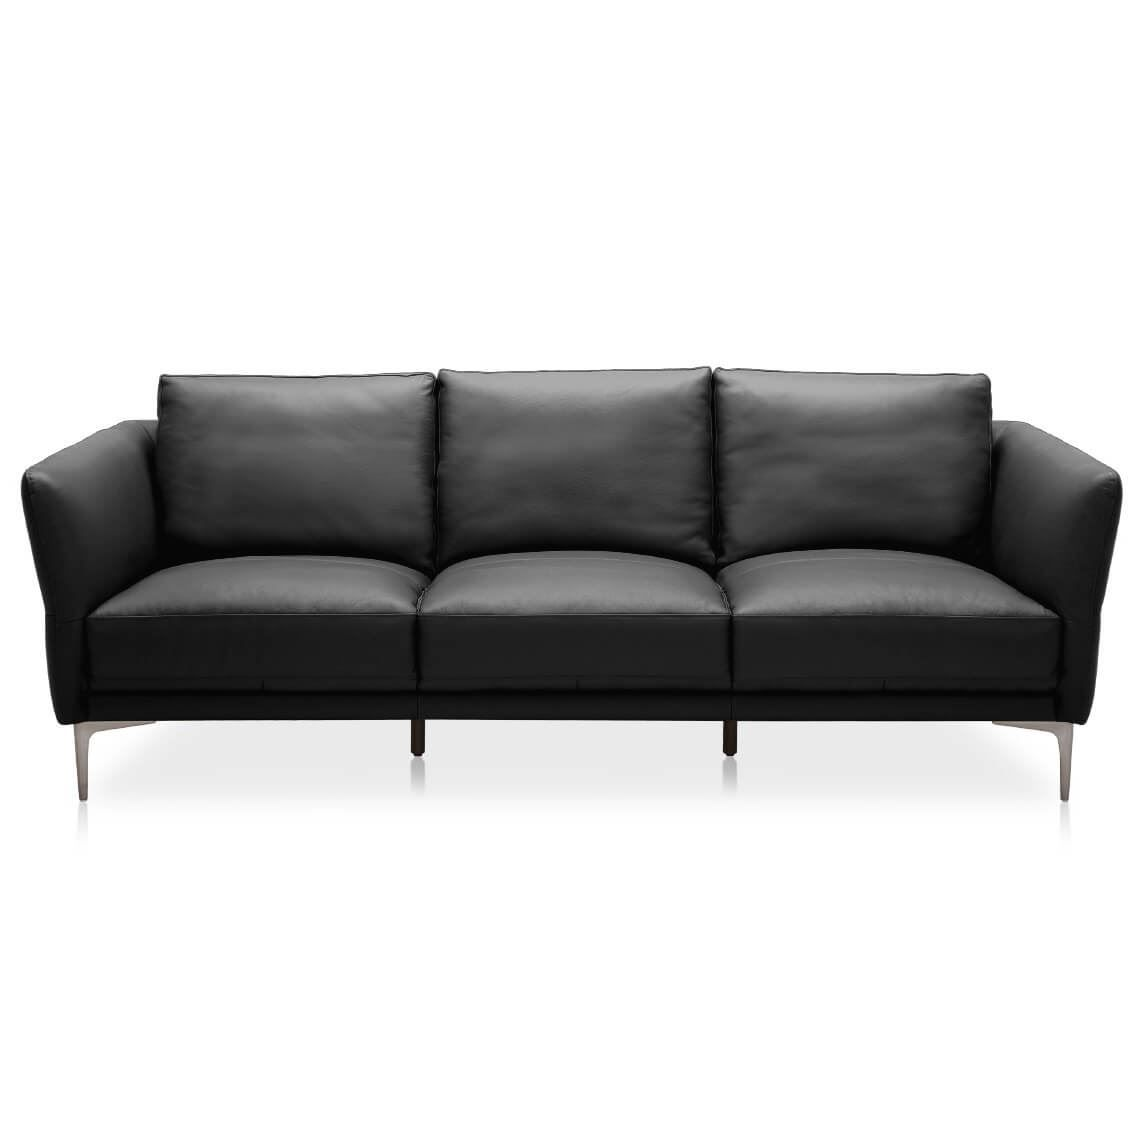 BERRY 3 Seat Leather Sofa in 2019 | Products | Leather sofa ...